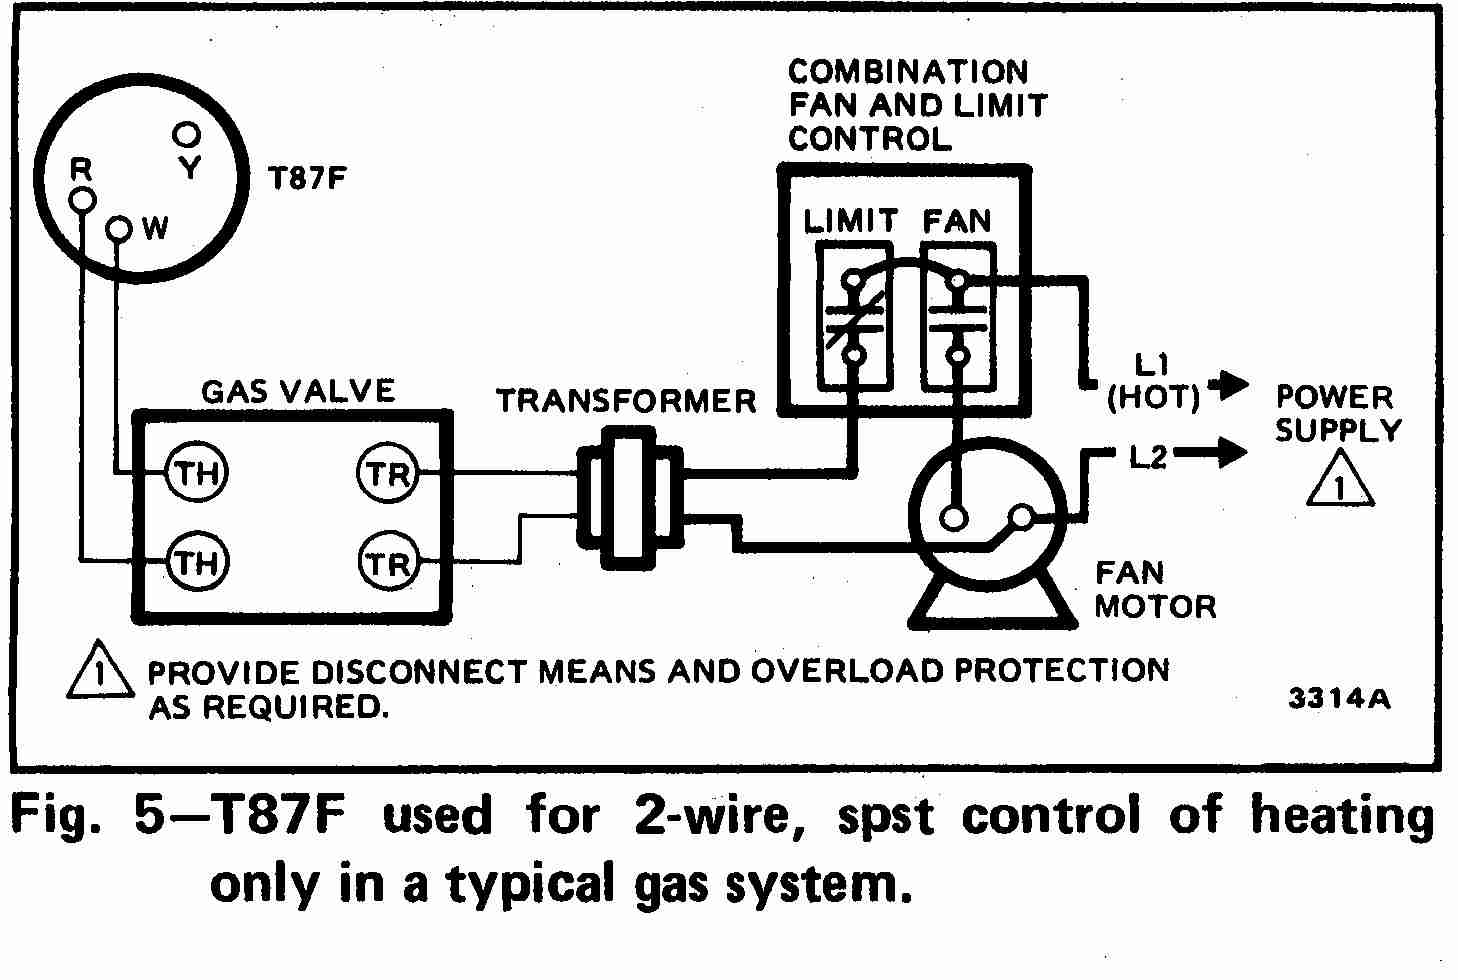 TT_T87F_0002_2Wg_DJF room thermostat wiring diagrams for hvac systems  at creativeand.co